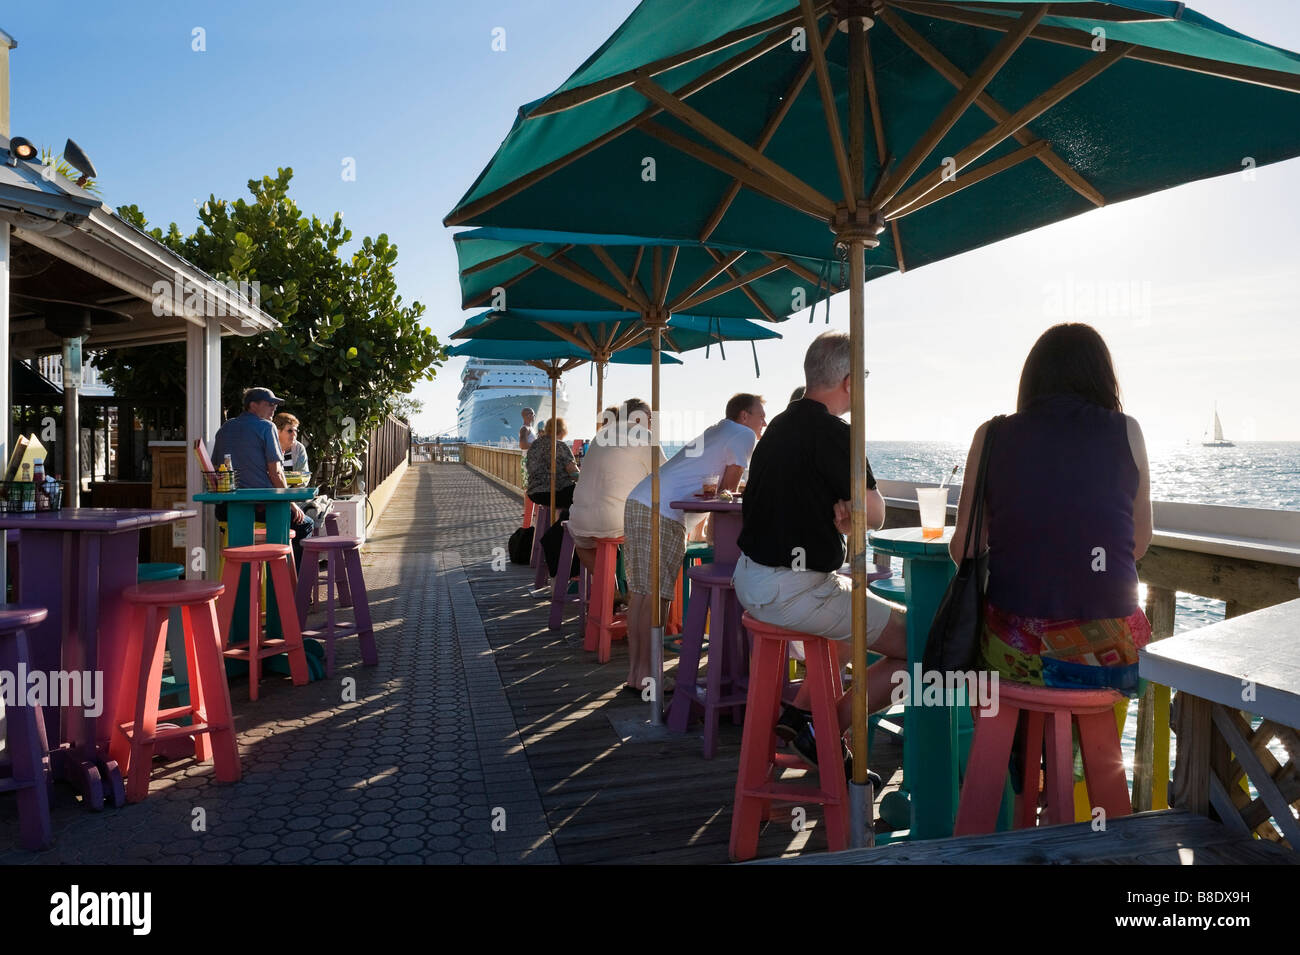 Sunset Pier bar and restaurant in the late afternoon, Ocean Key Resort, Old Town, Key West, Florida Keys, USA - Stock Image